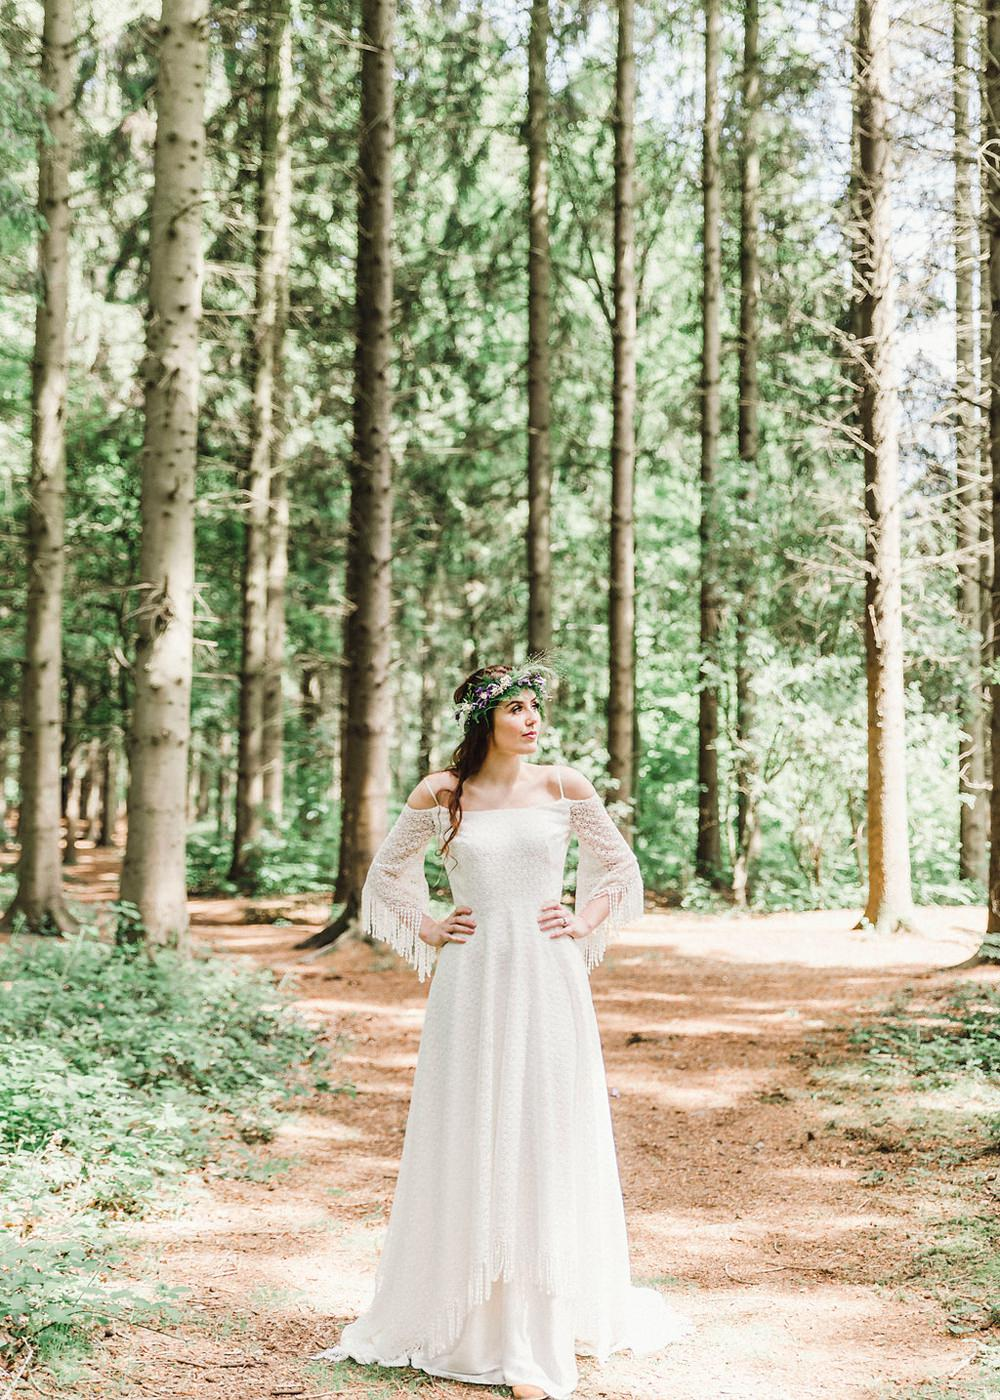 Bride Bridal Gown Dress Fringed Tassel Bohemian Sleeves Train Boho Woodland Wedding Ideas Camp Katur Emily Olivia Photography